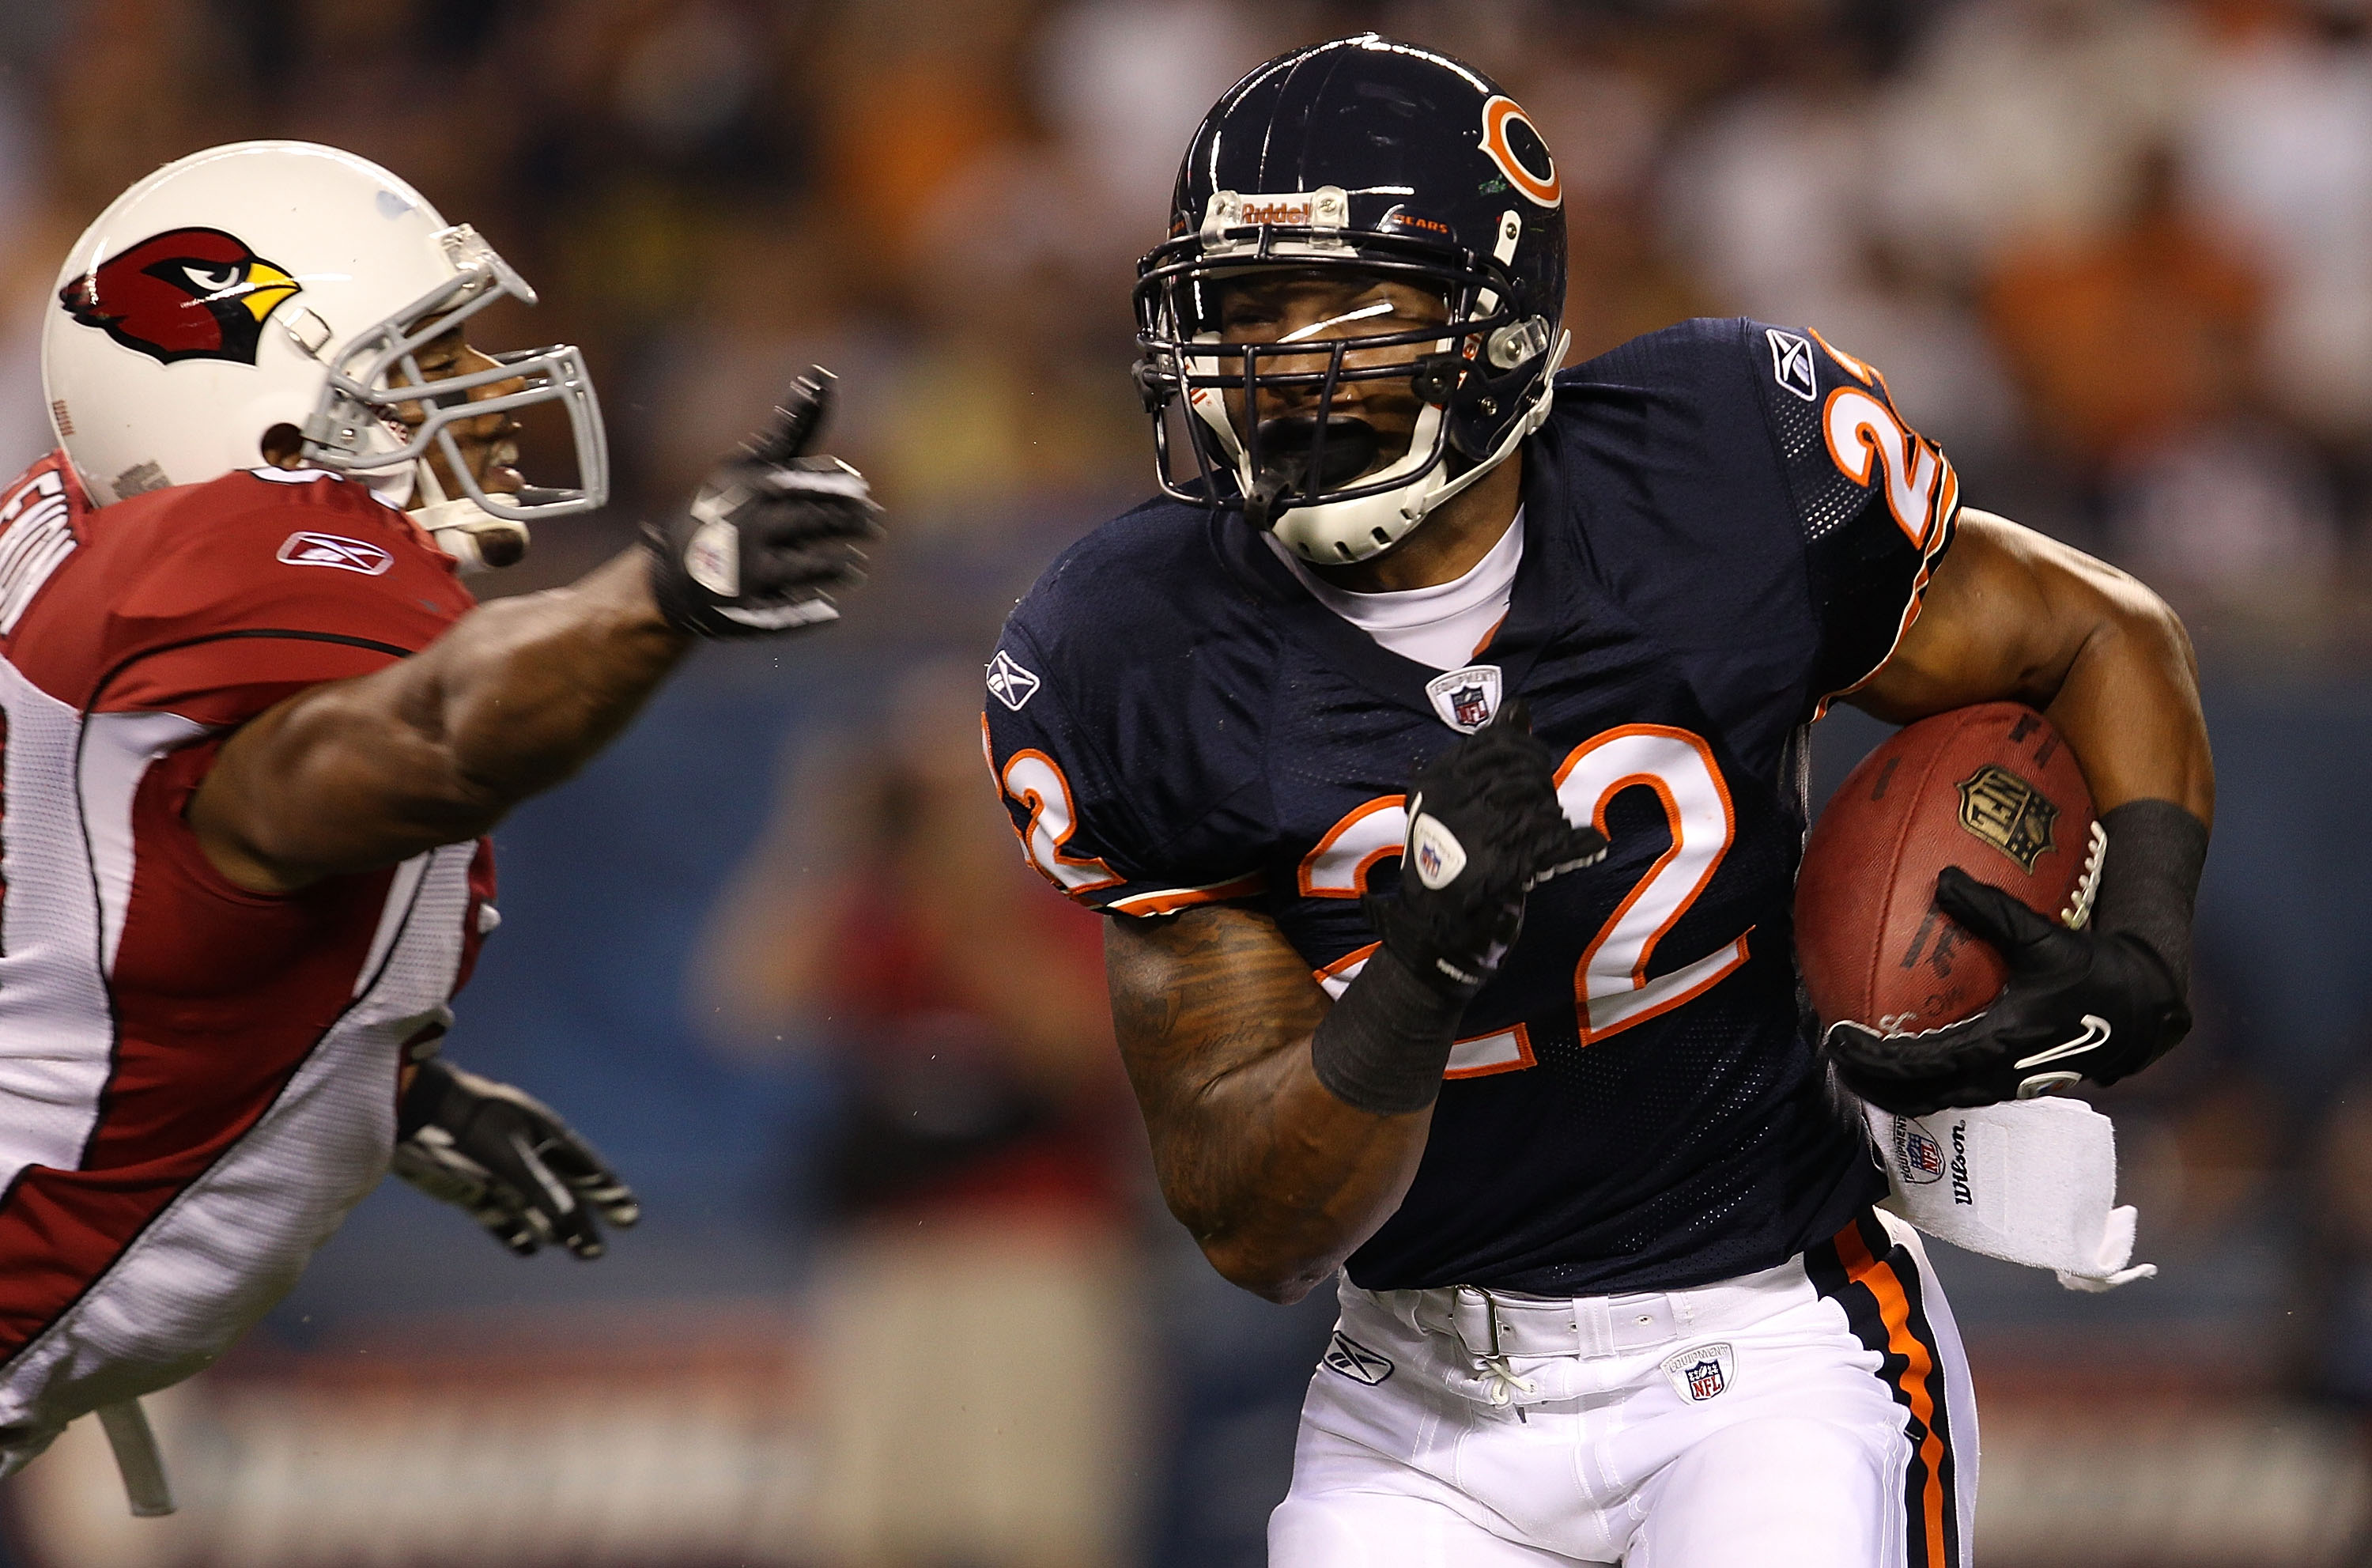 CHICAGO - AUGUST 28: Matt Forte #22 of the Chicago Bears runs past Paris Lenon #51 of the Arizona Cardinals during a preseason game at Soldier Field on August 28, 2010 in Chicago, Illinois. (Photo by Jonathan Daniel/Getty Images)